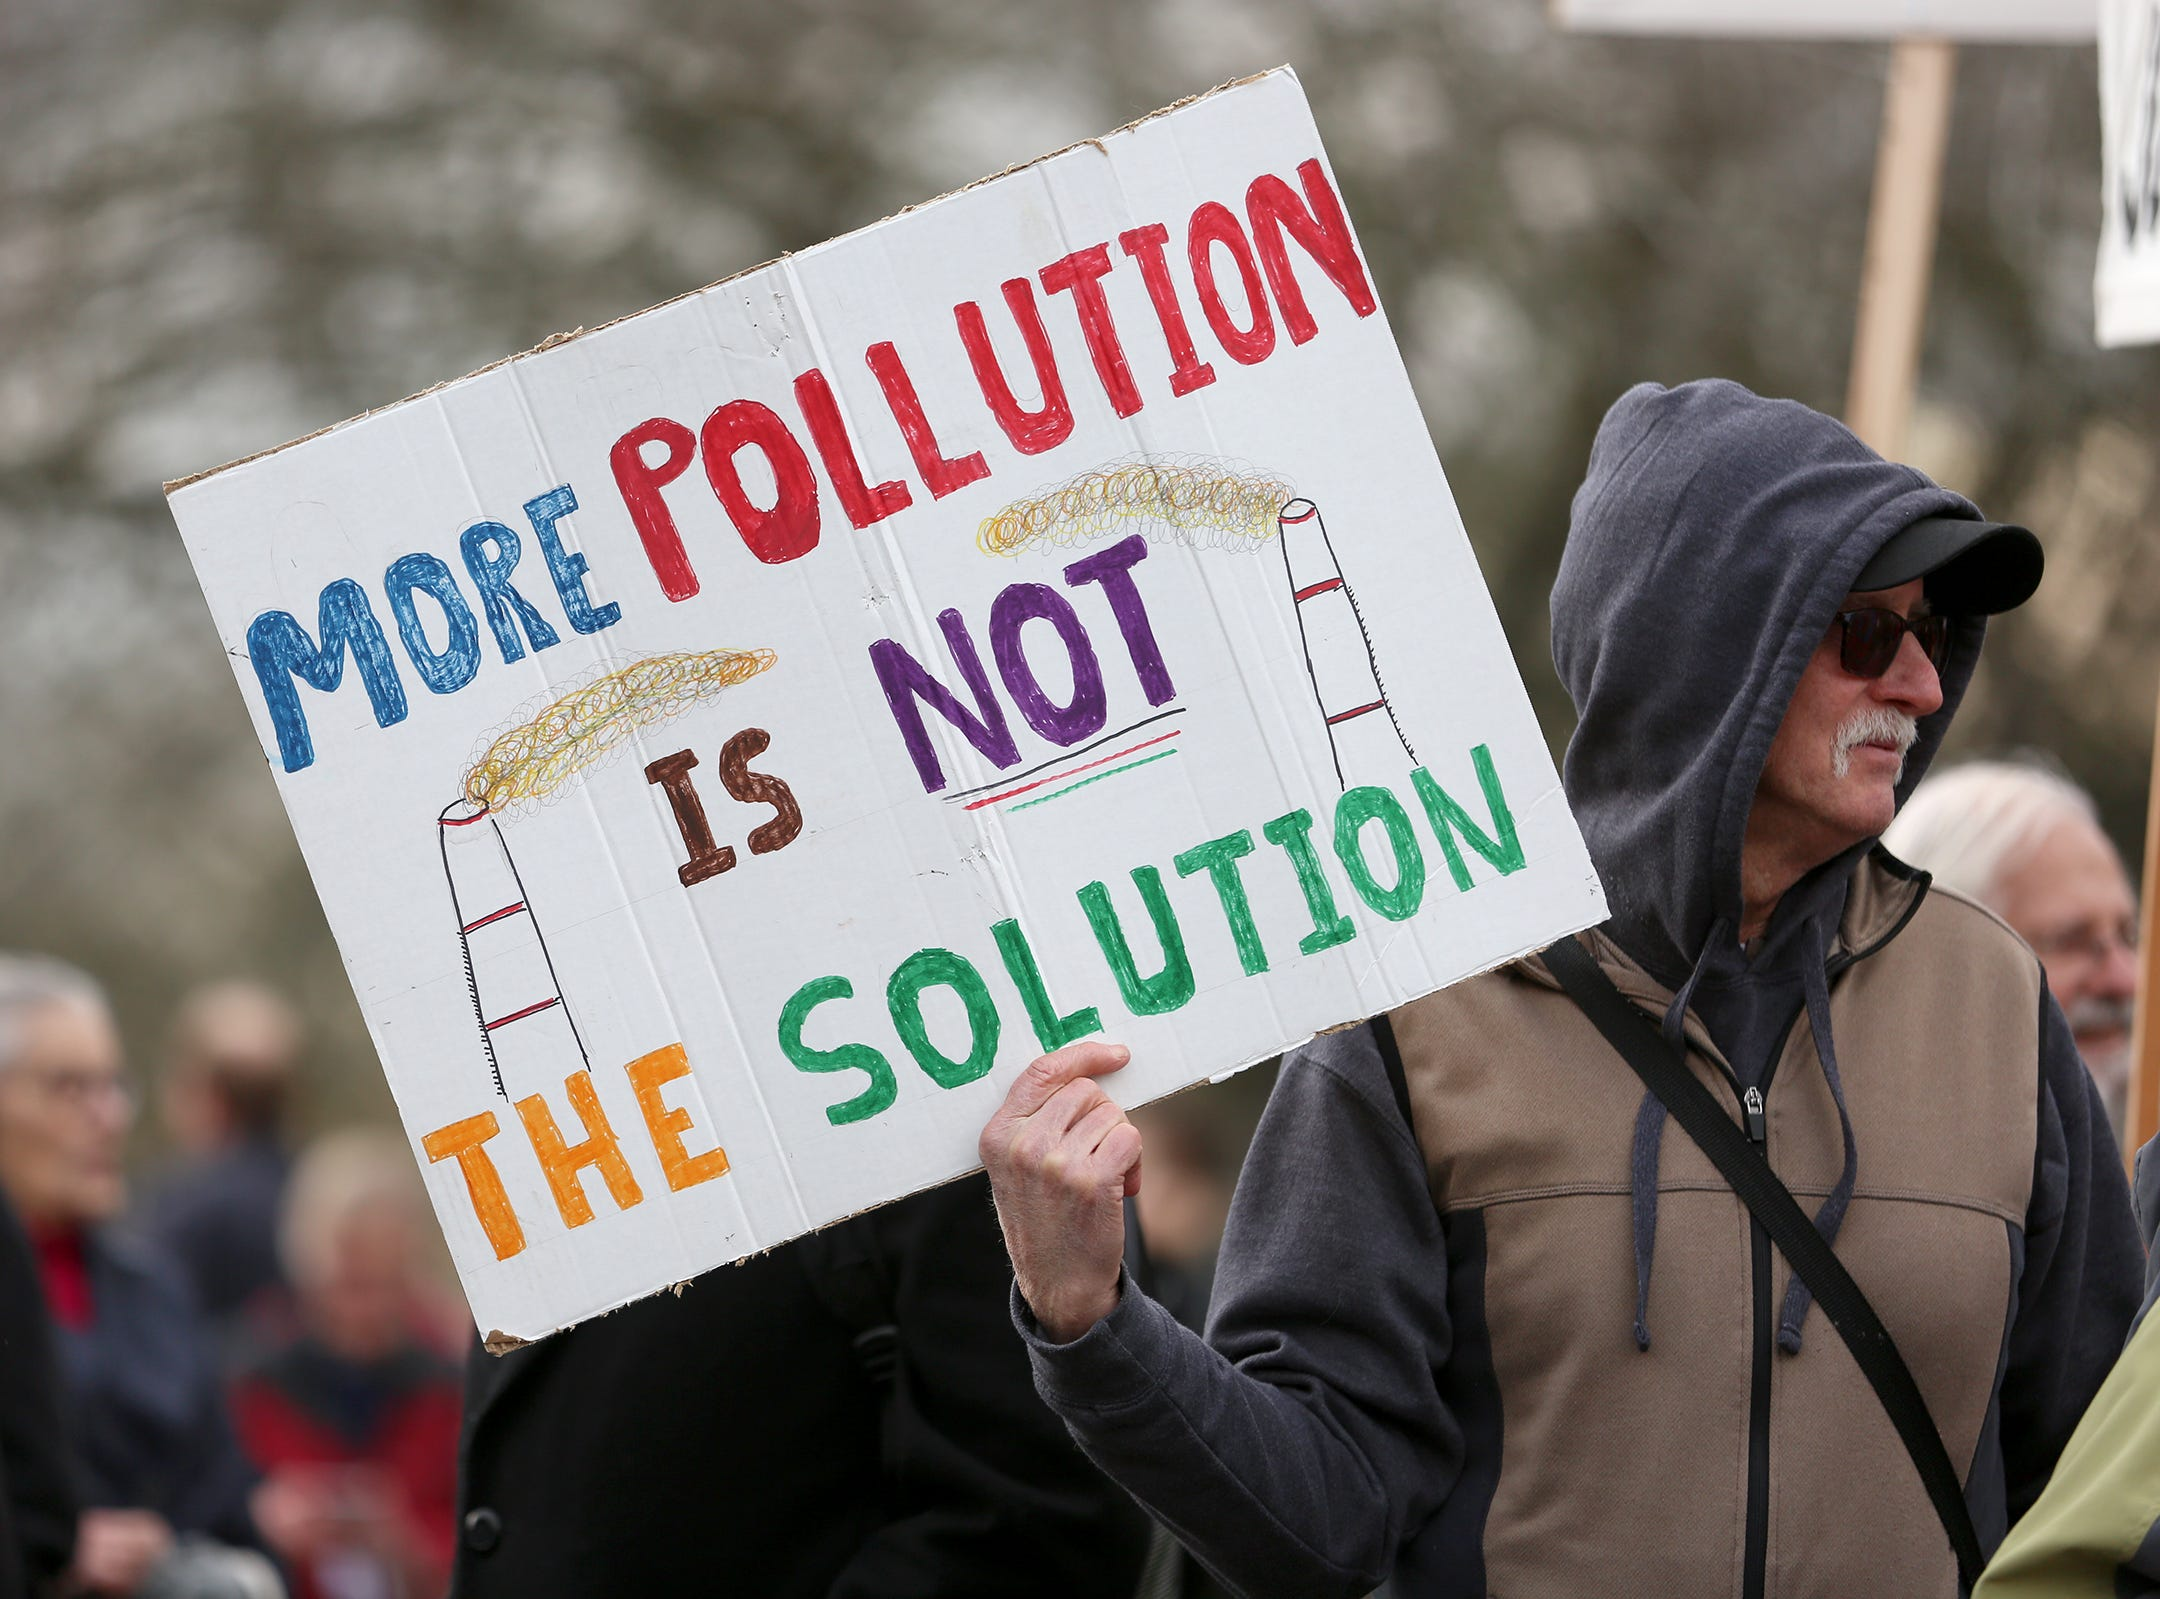 Oregonians from all 30 Senate districts in the state rallied in support of clean energy jobs at the Oregon State Capitol in Salem on Wednesday, Feb. 6, 2019.